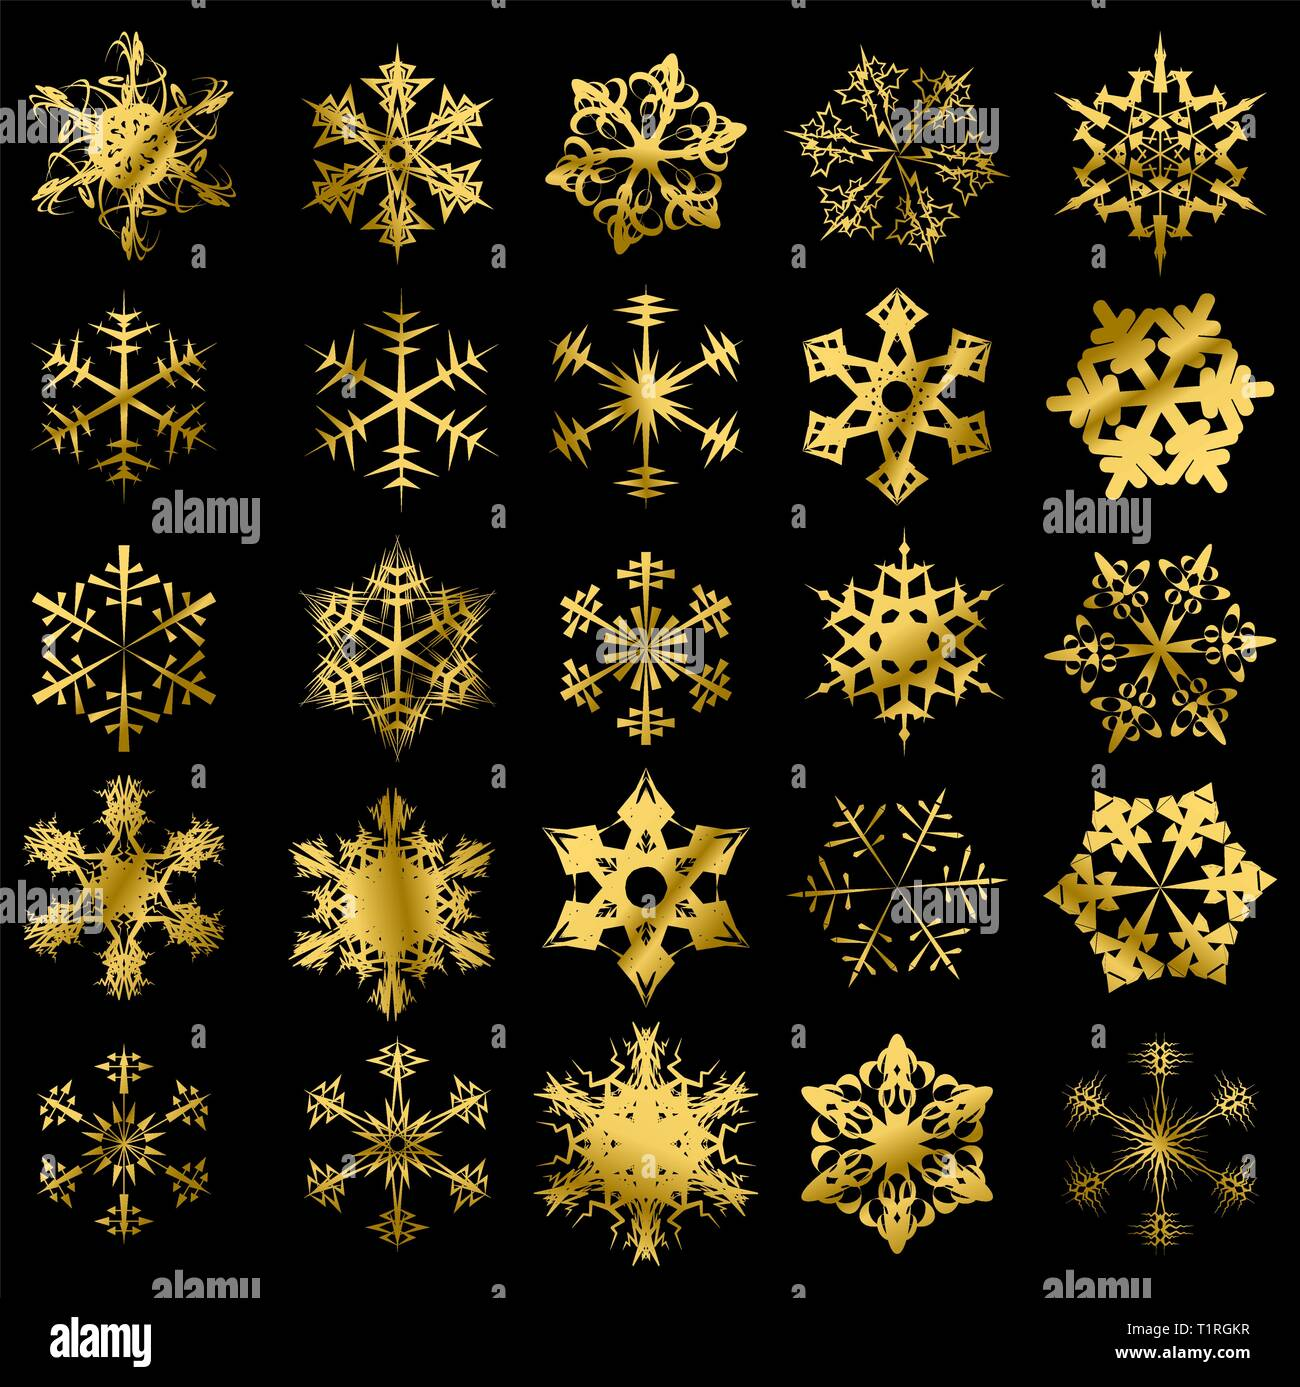 Golden snowflakes isolated on a black background - Stock Vector